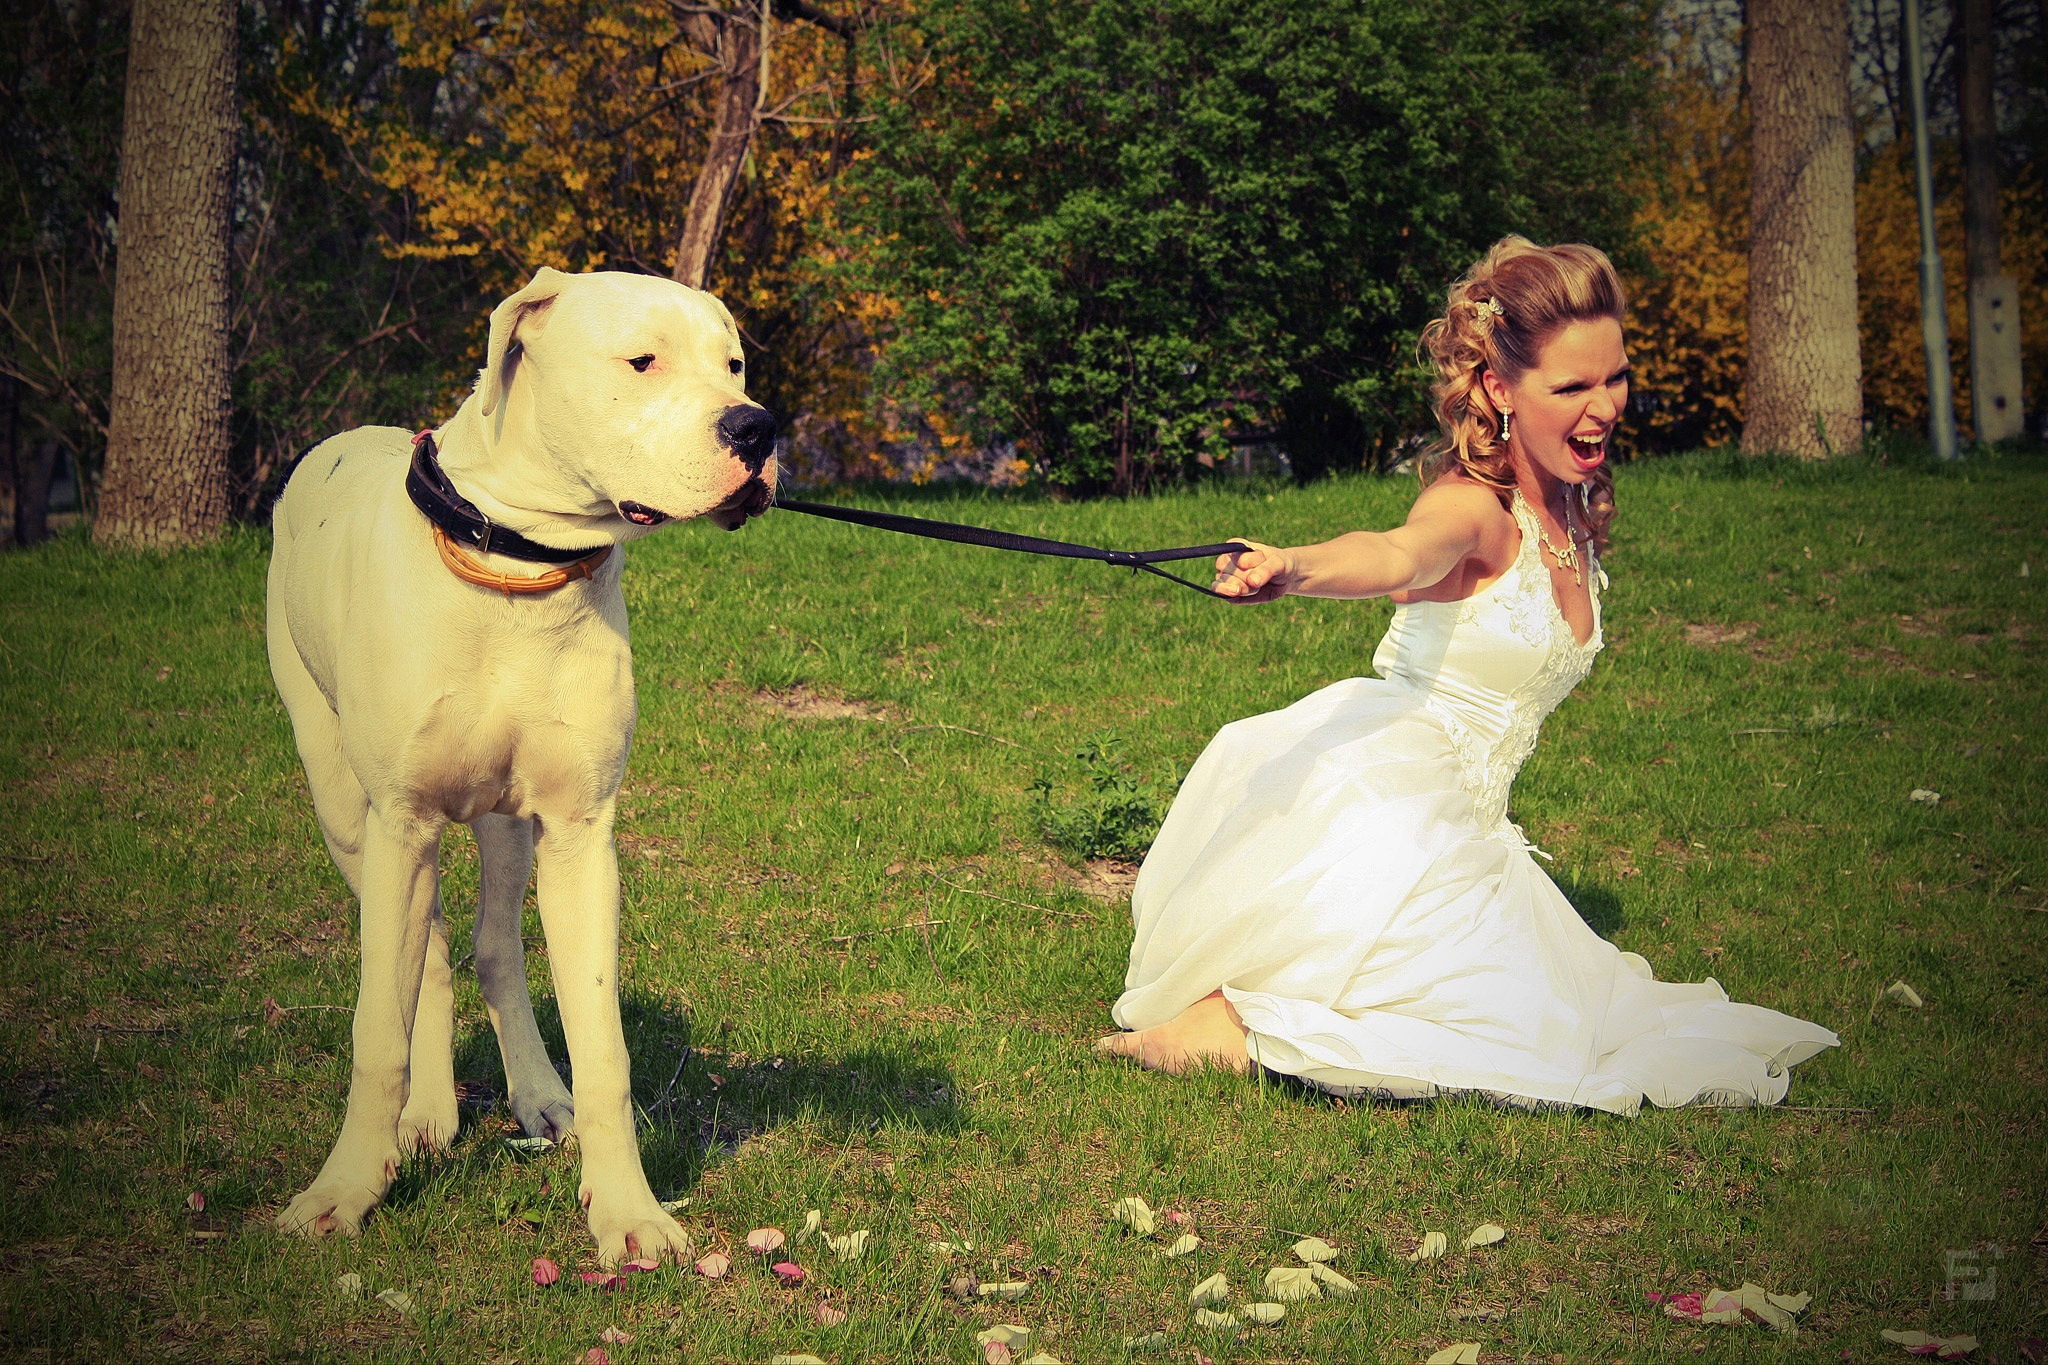 Weddings with Foth Photo/06: The Bride And The Dog by Miklós Fóth